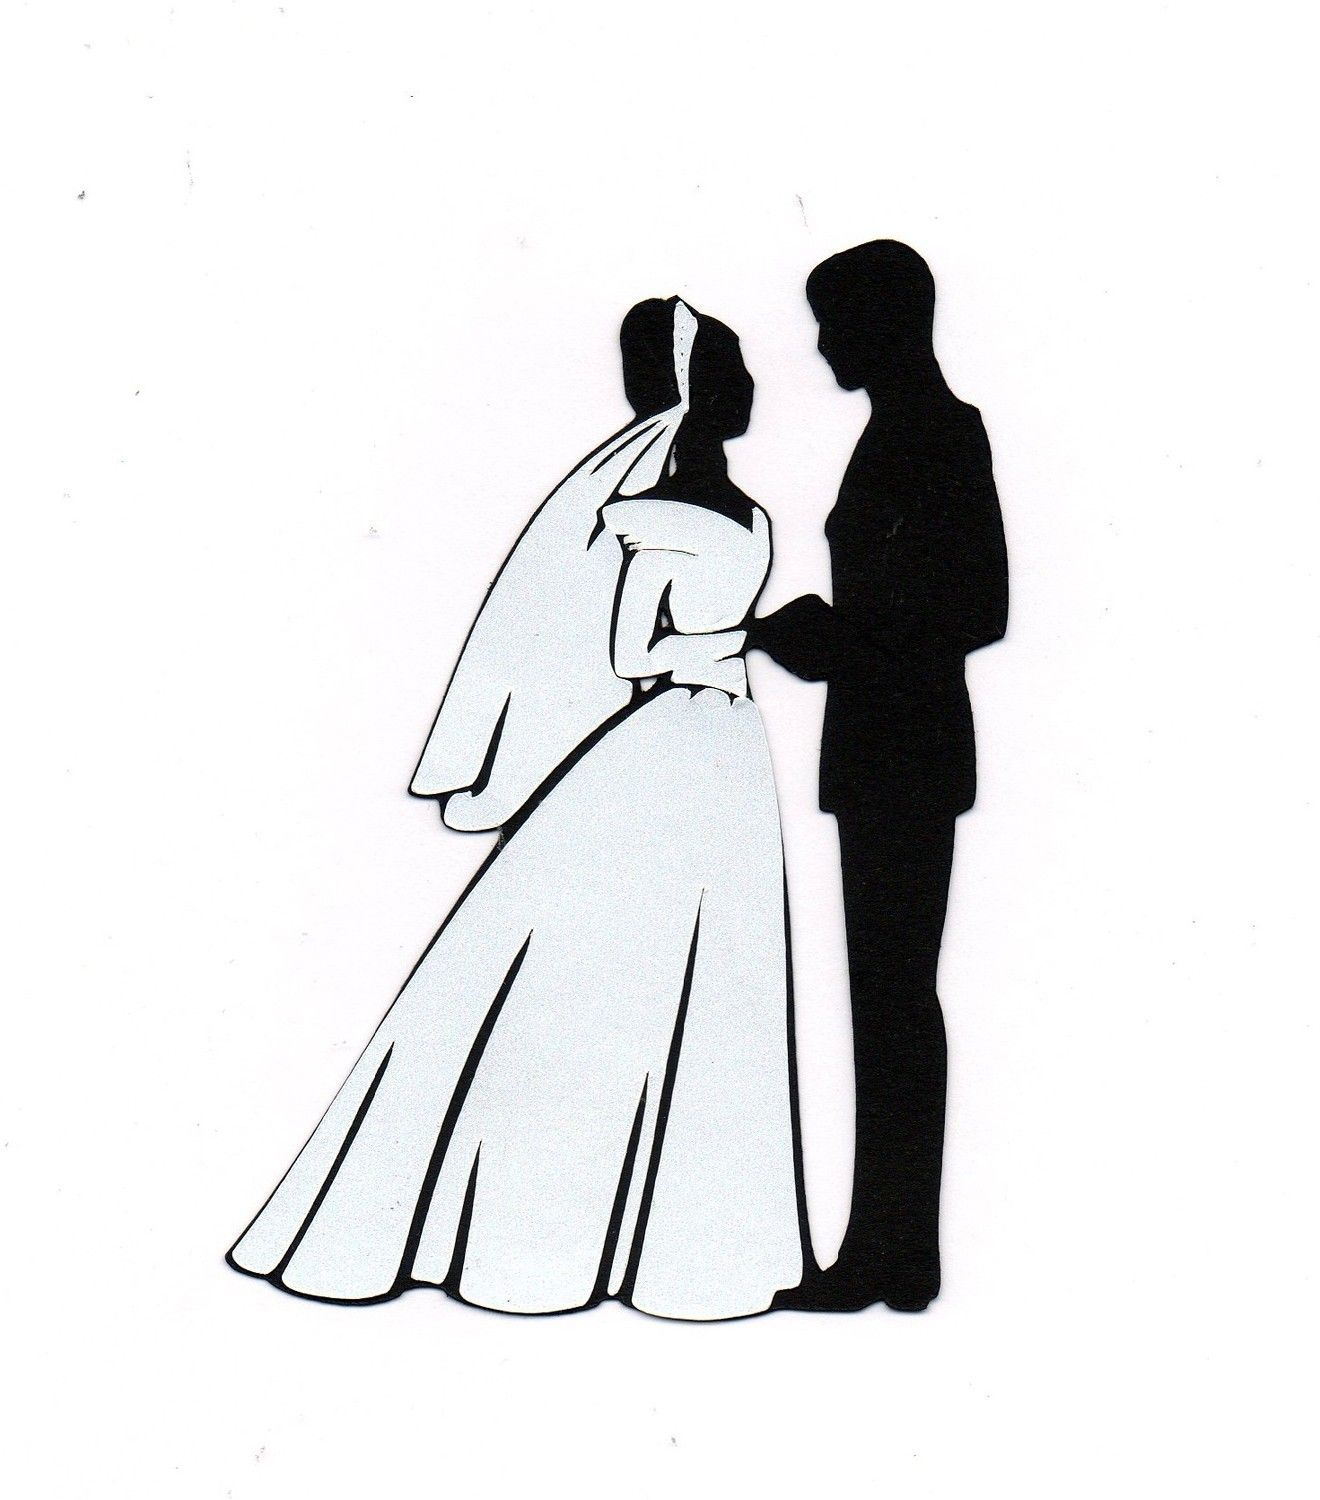 Bride And Groom Silhouette Clip Art Silhouette Clip Art Cute Images For Wallpaper Bride And Groom Silhouette